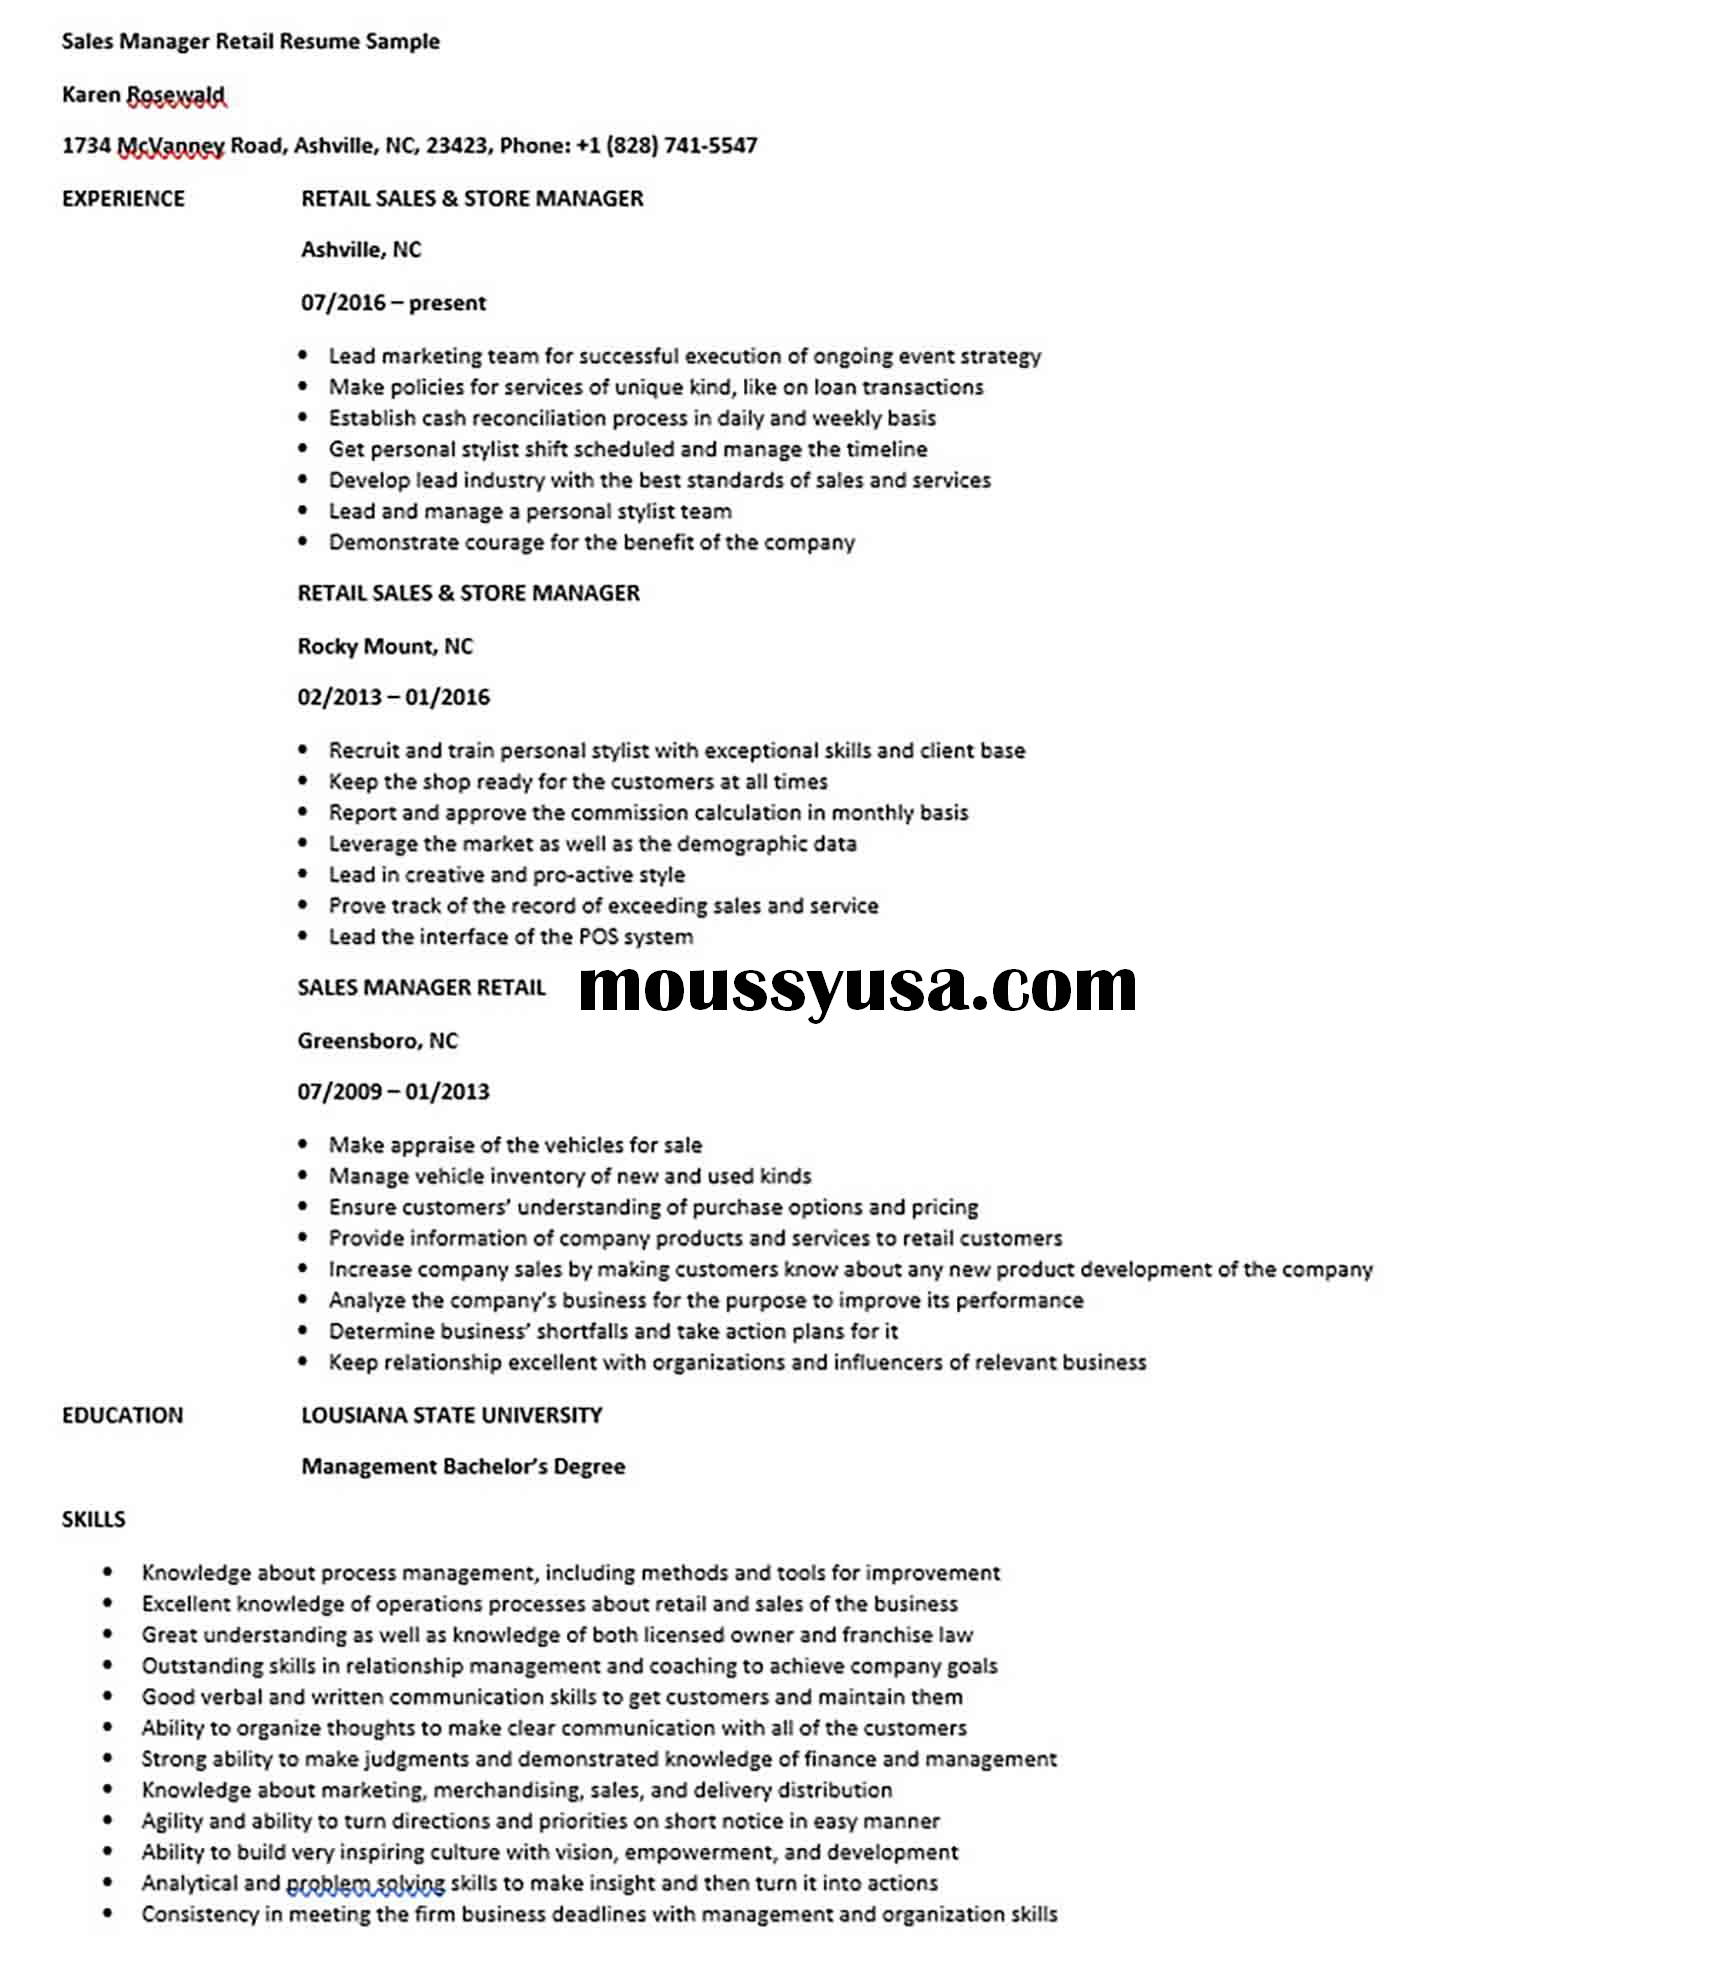 Sales Manager Retail Resume Sample